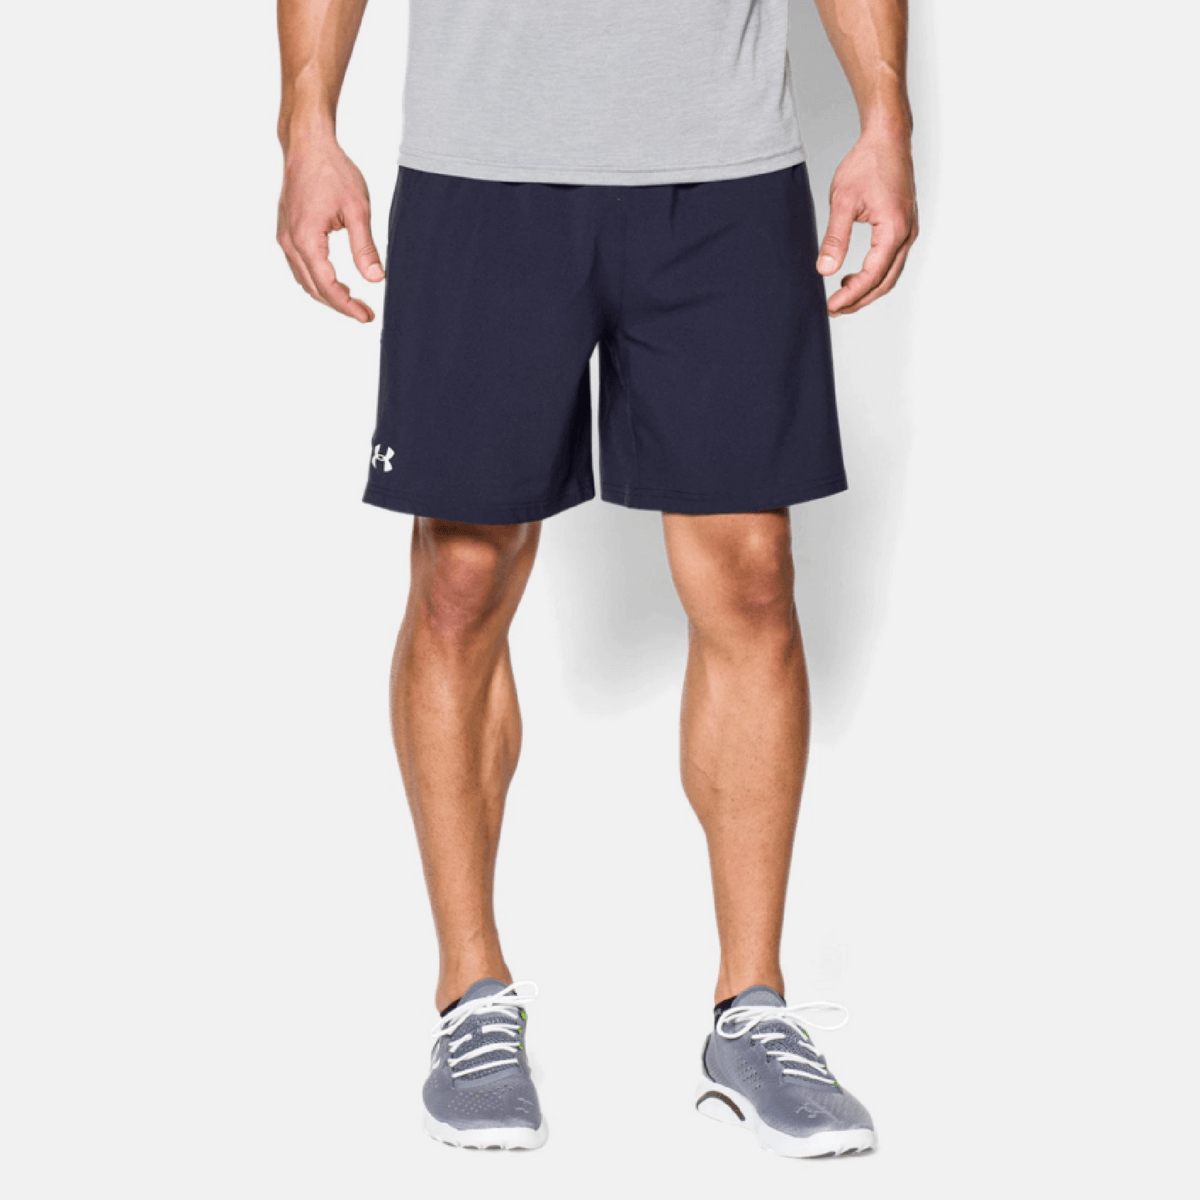 Under Armour Mirage Short 8'' Navy - S